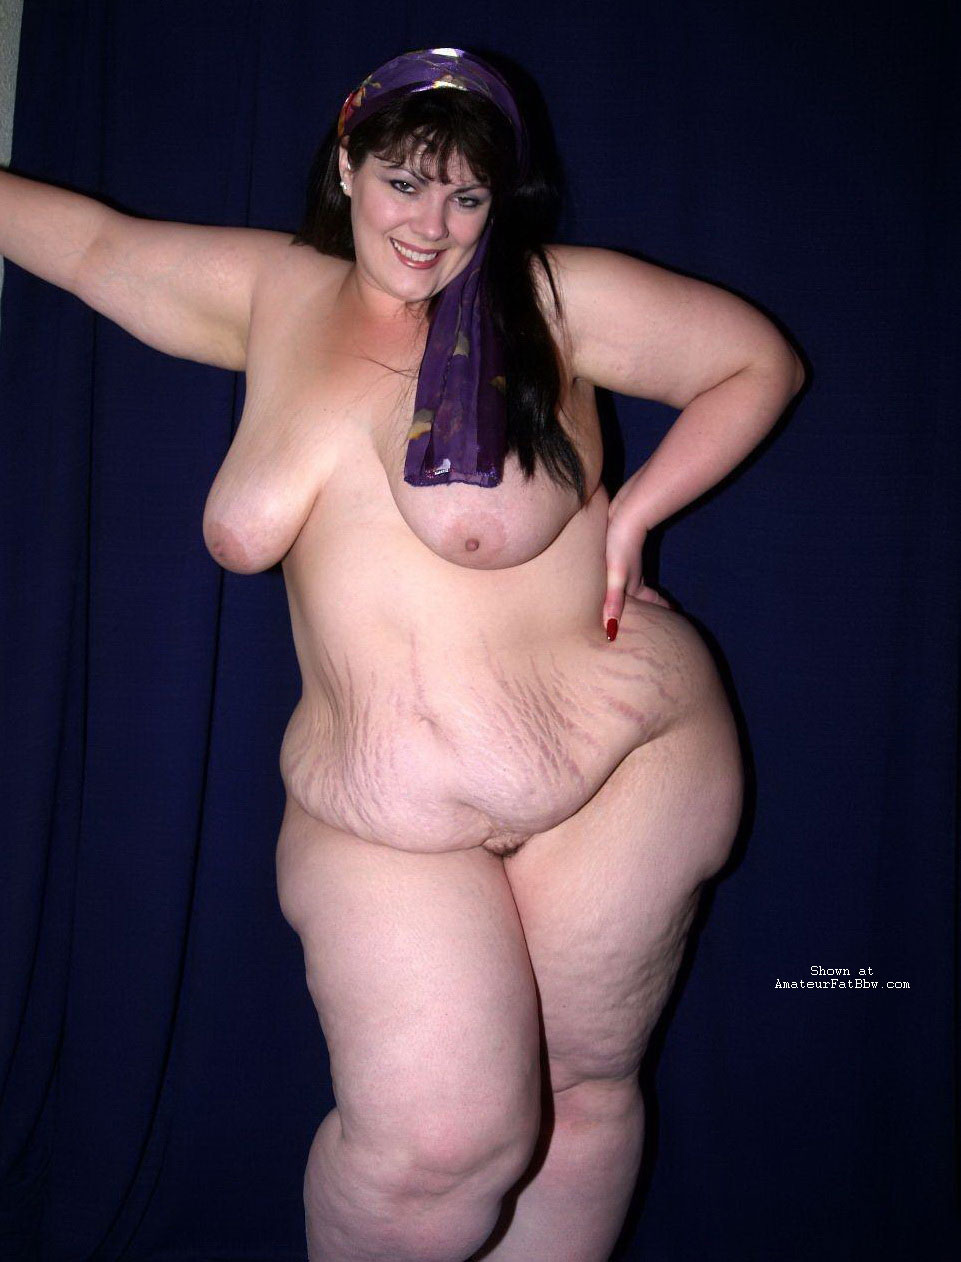 pics of naked fat chicks